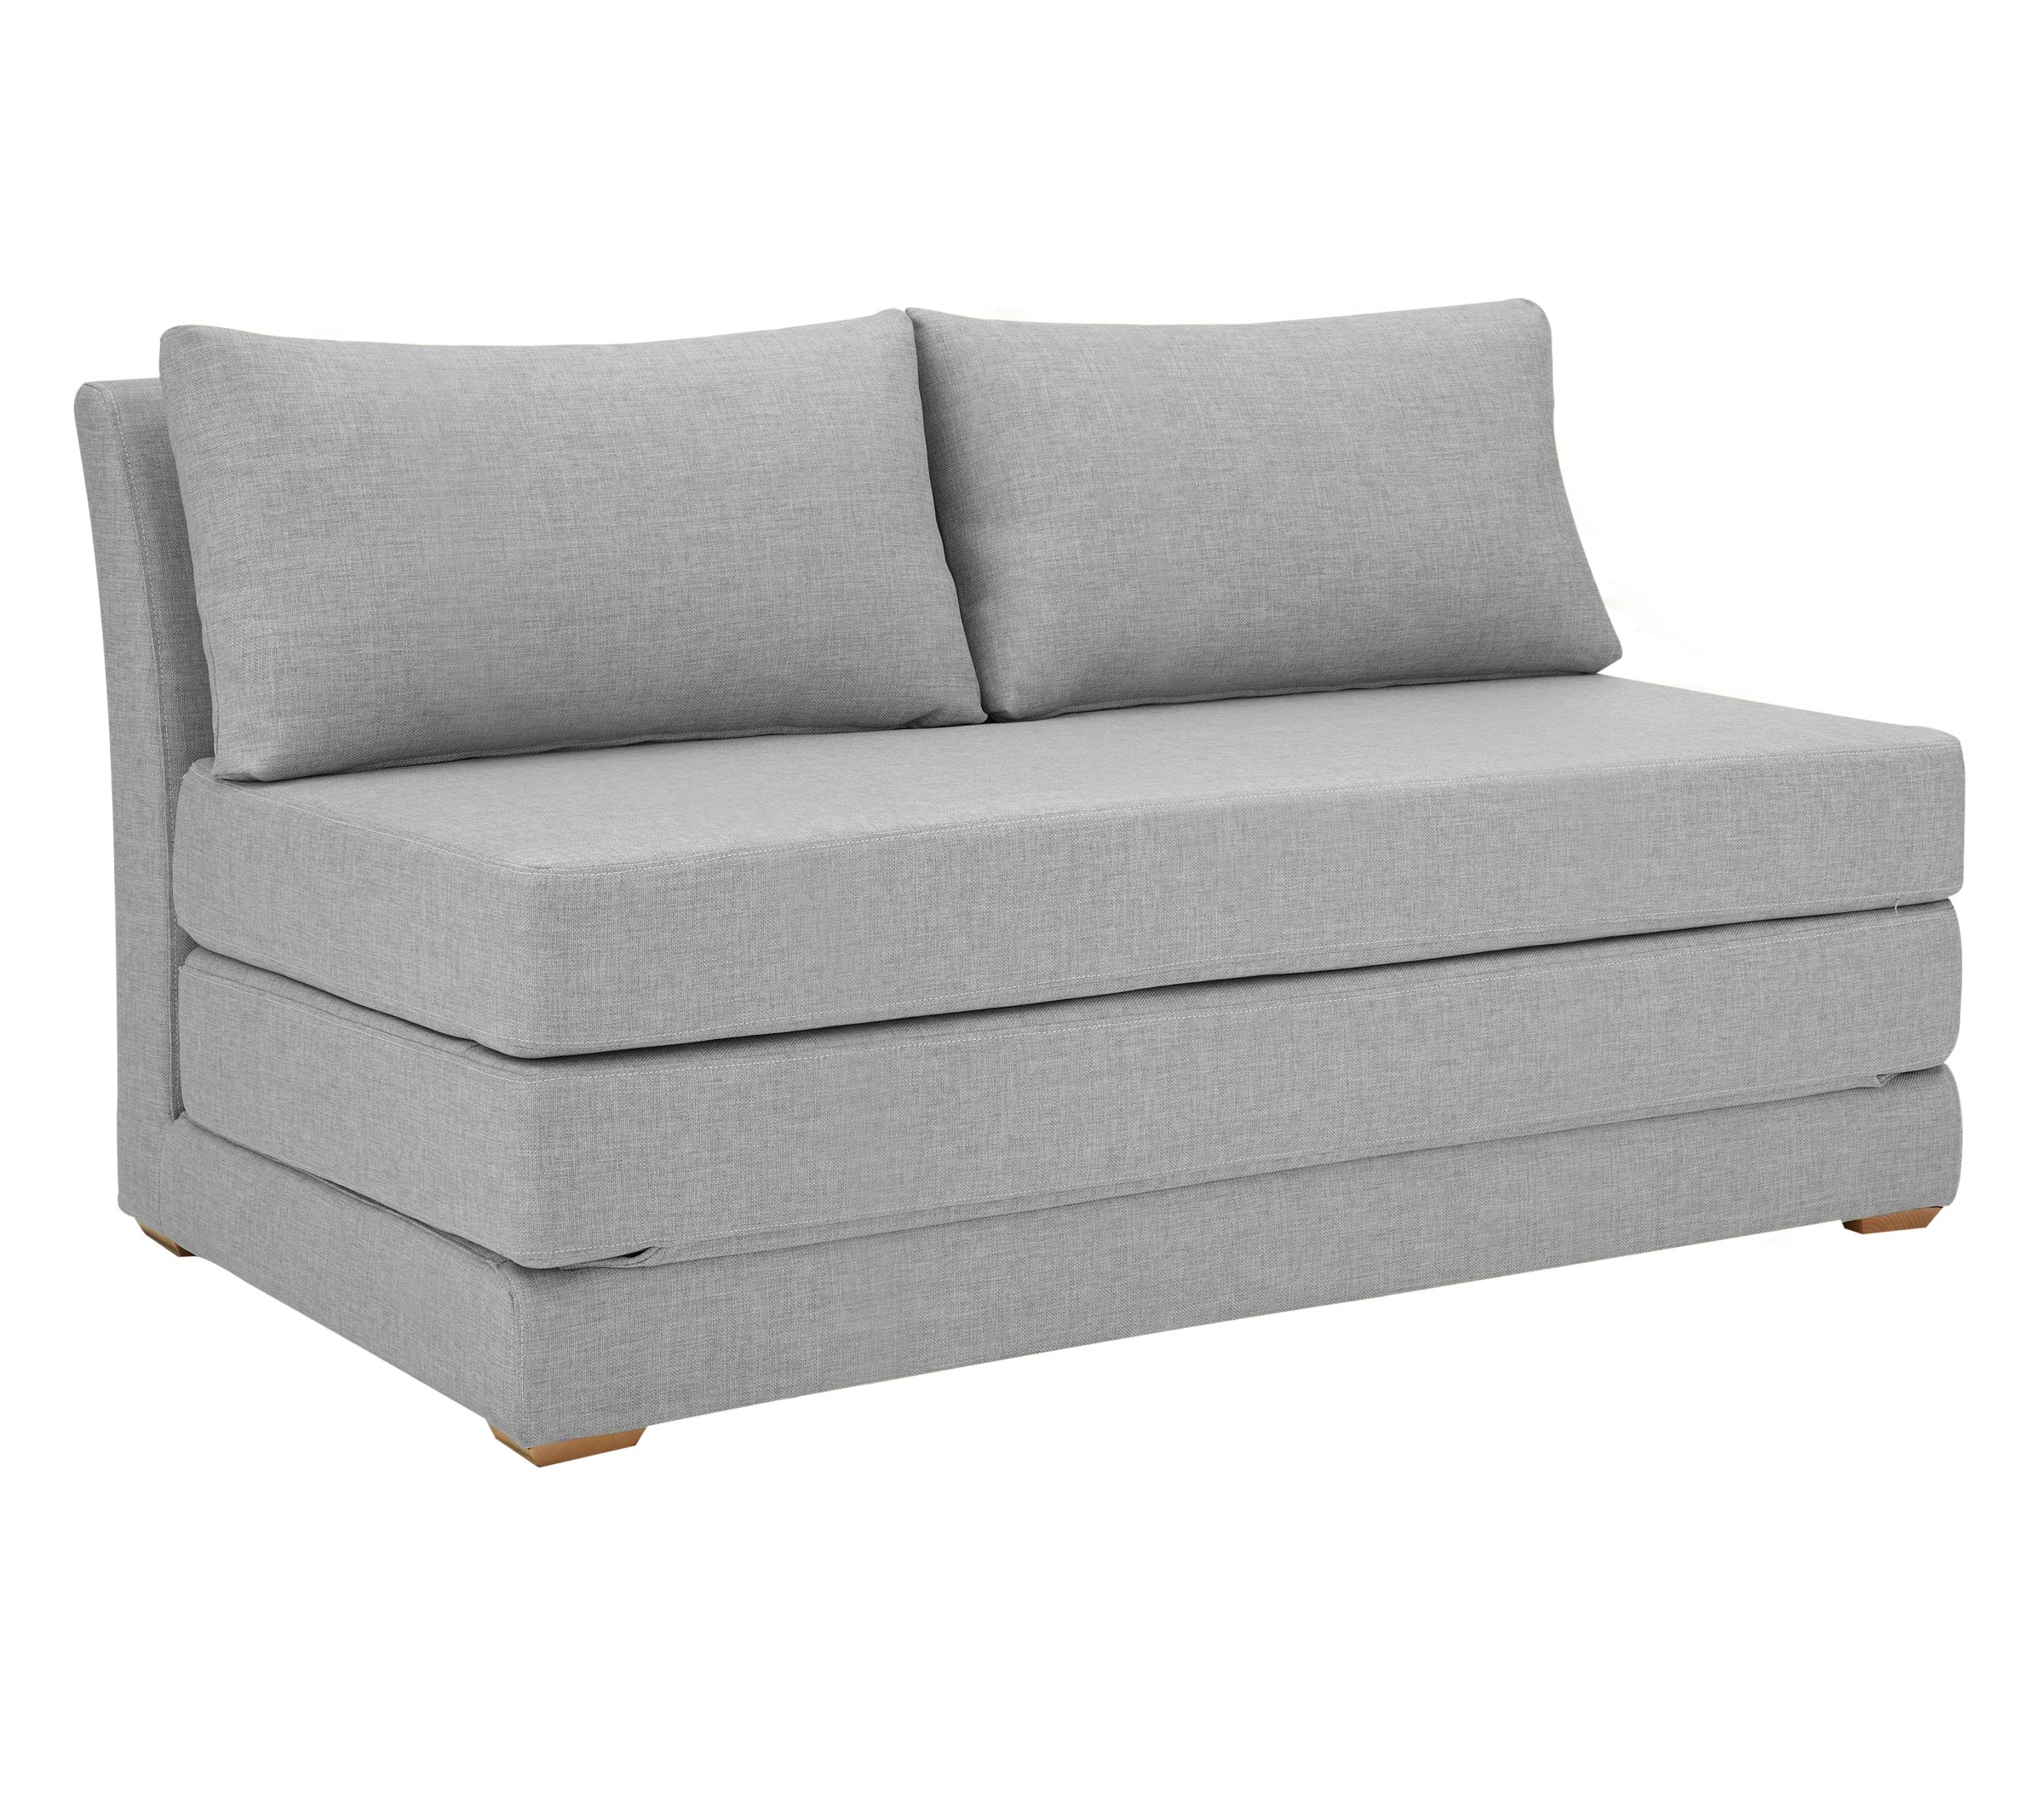 Cheap Small Double Sofa Beds wwwlooksisquarecom